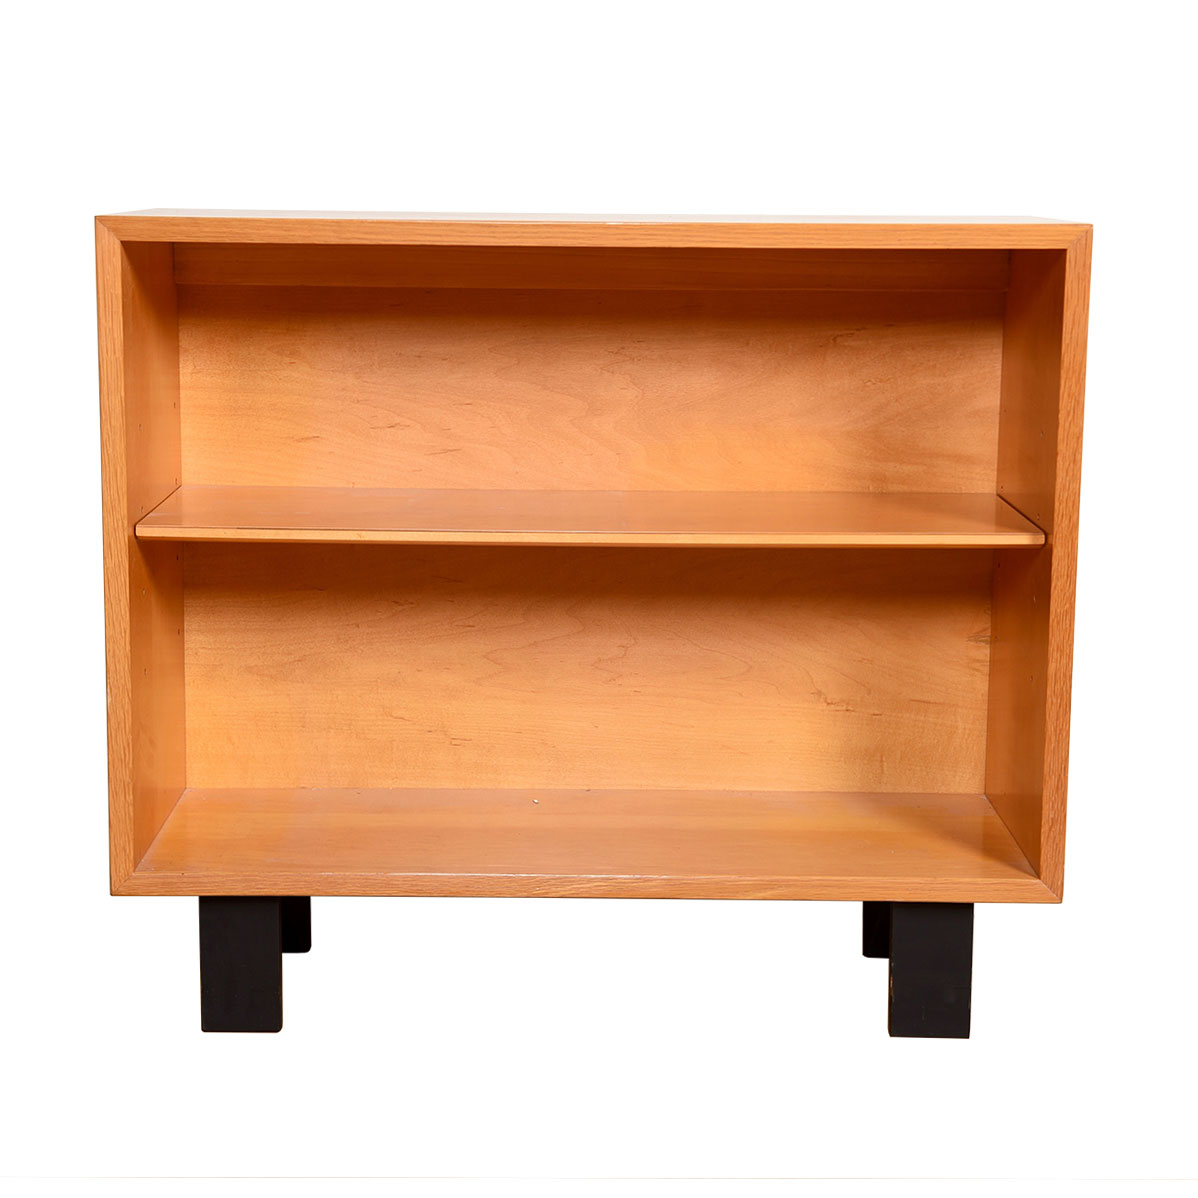 Slim Open Display | Compact Bookcase by George Nelson for Herman Miller 1950's